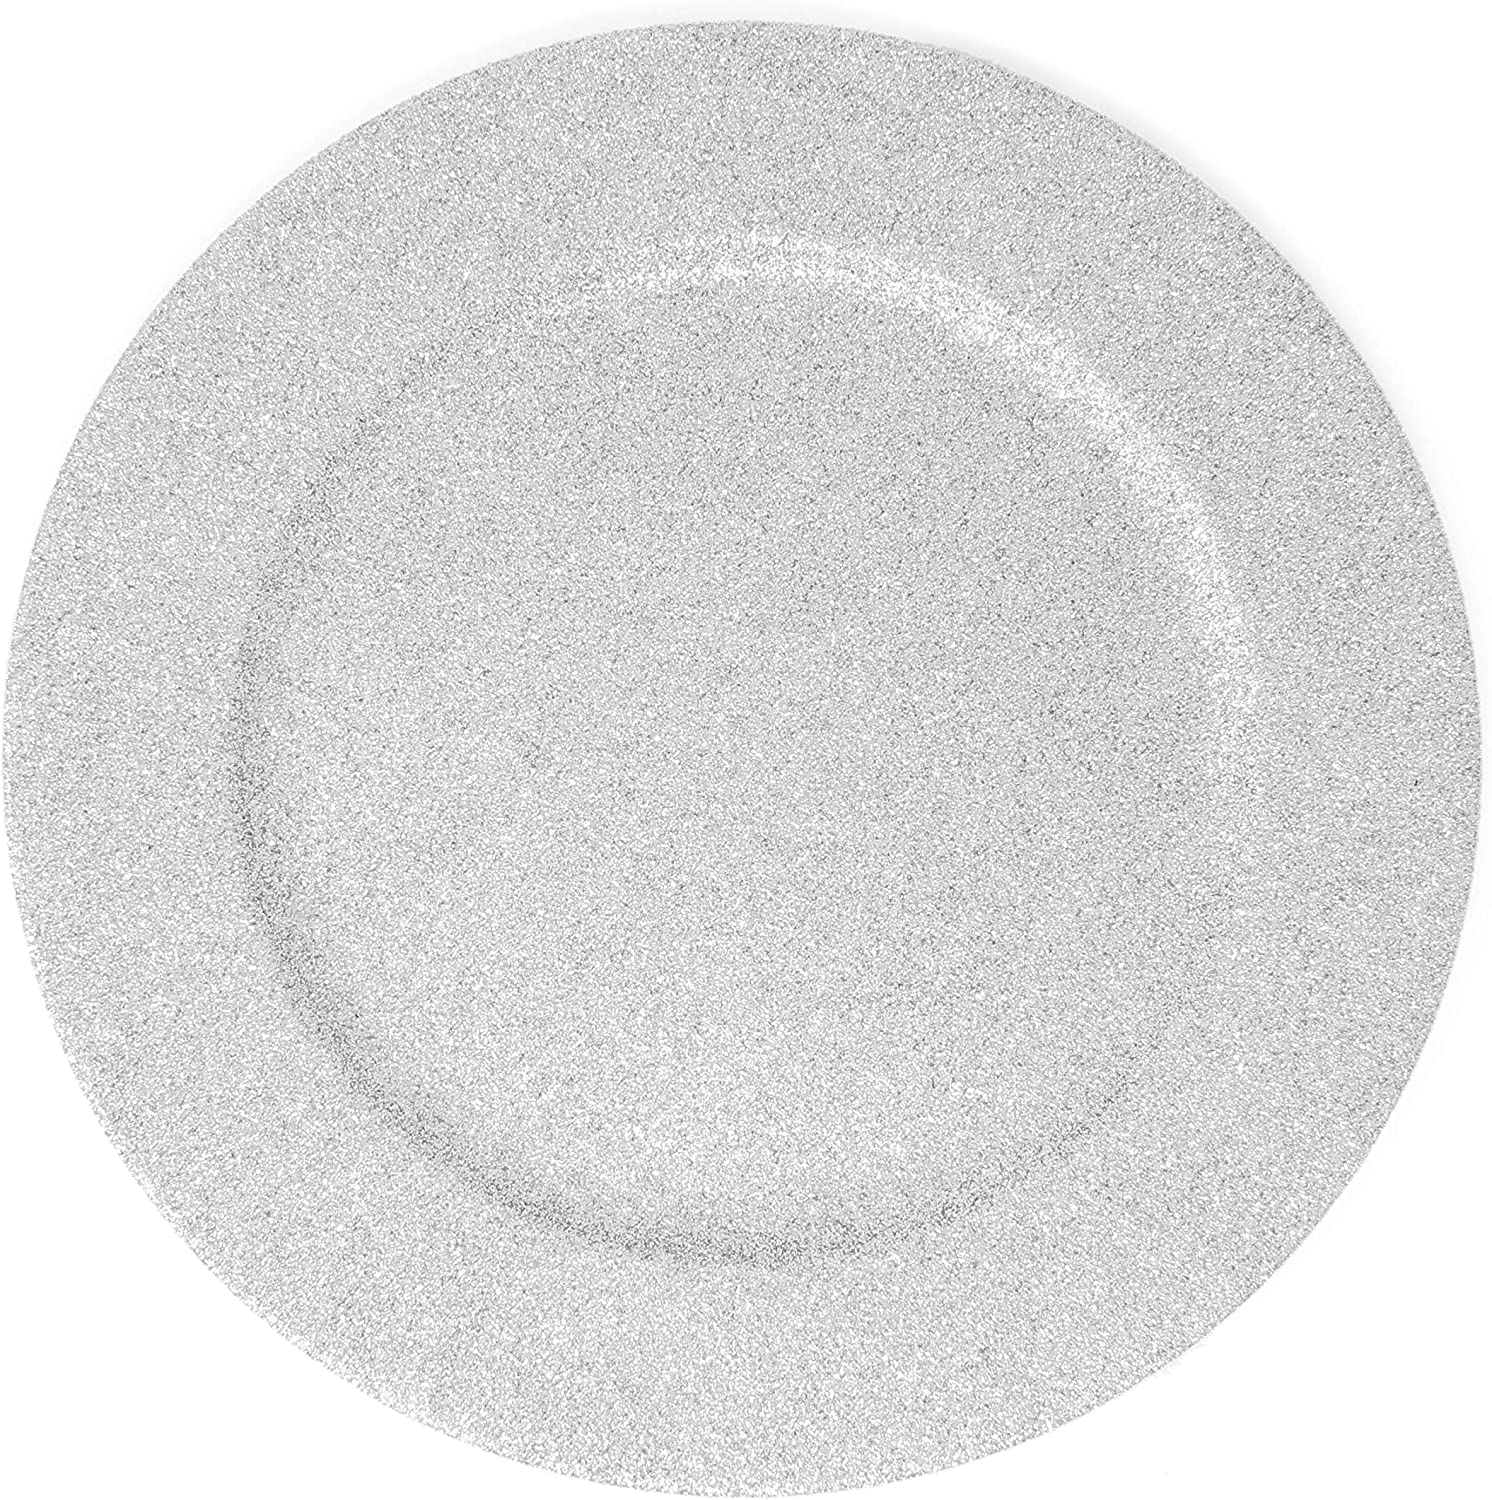 Glitter Sales Charger Plates - Set of Made Sales 6 Plastic Thick Silv